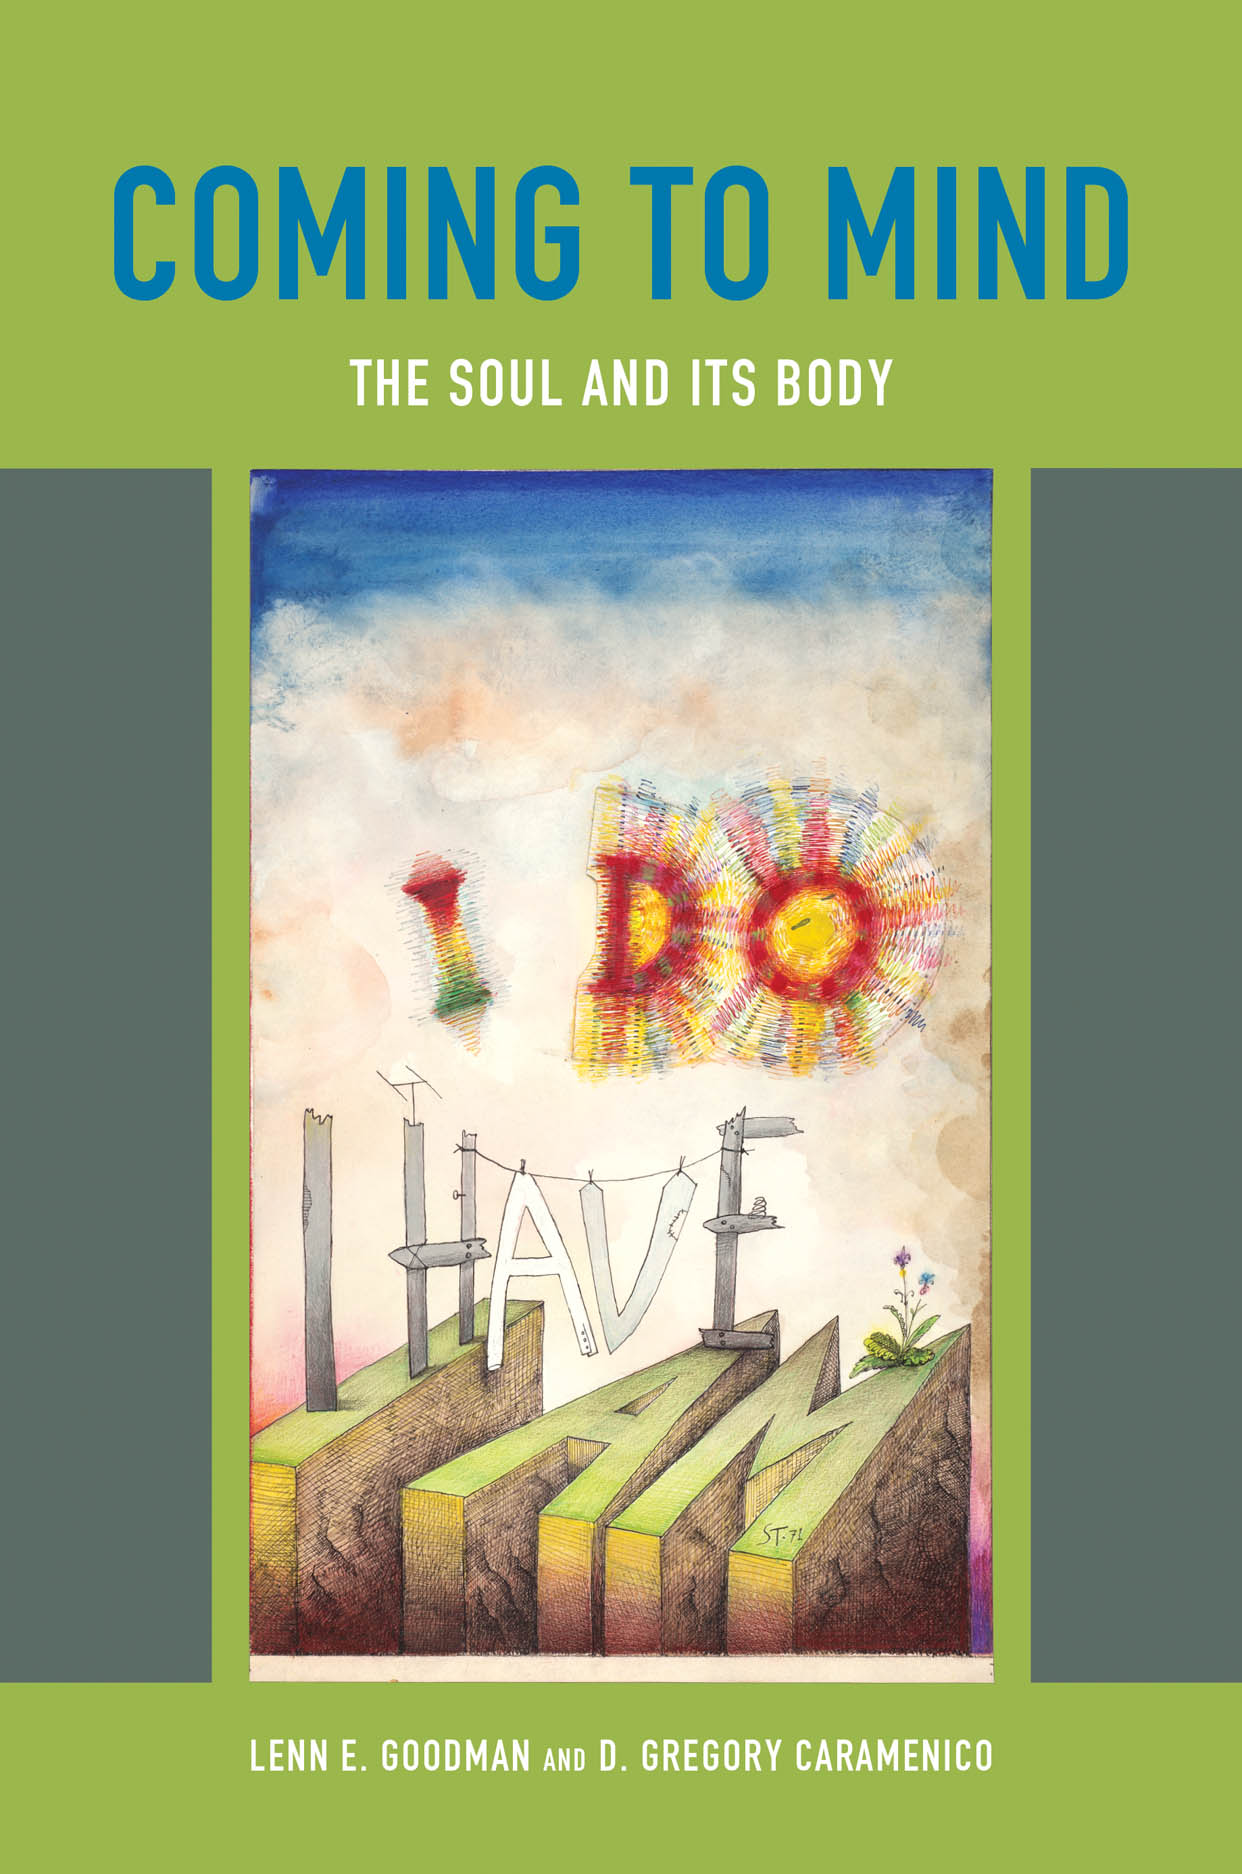 Coming to Mind: The Soul and Its Body